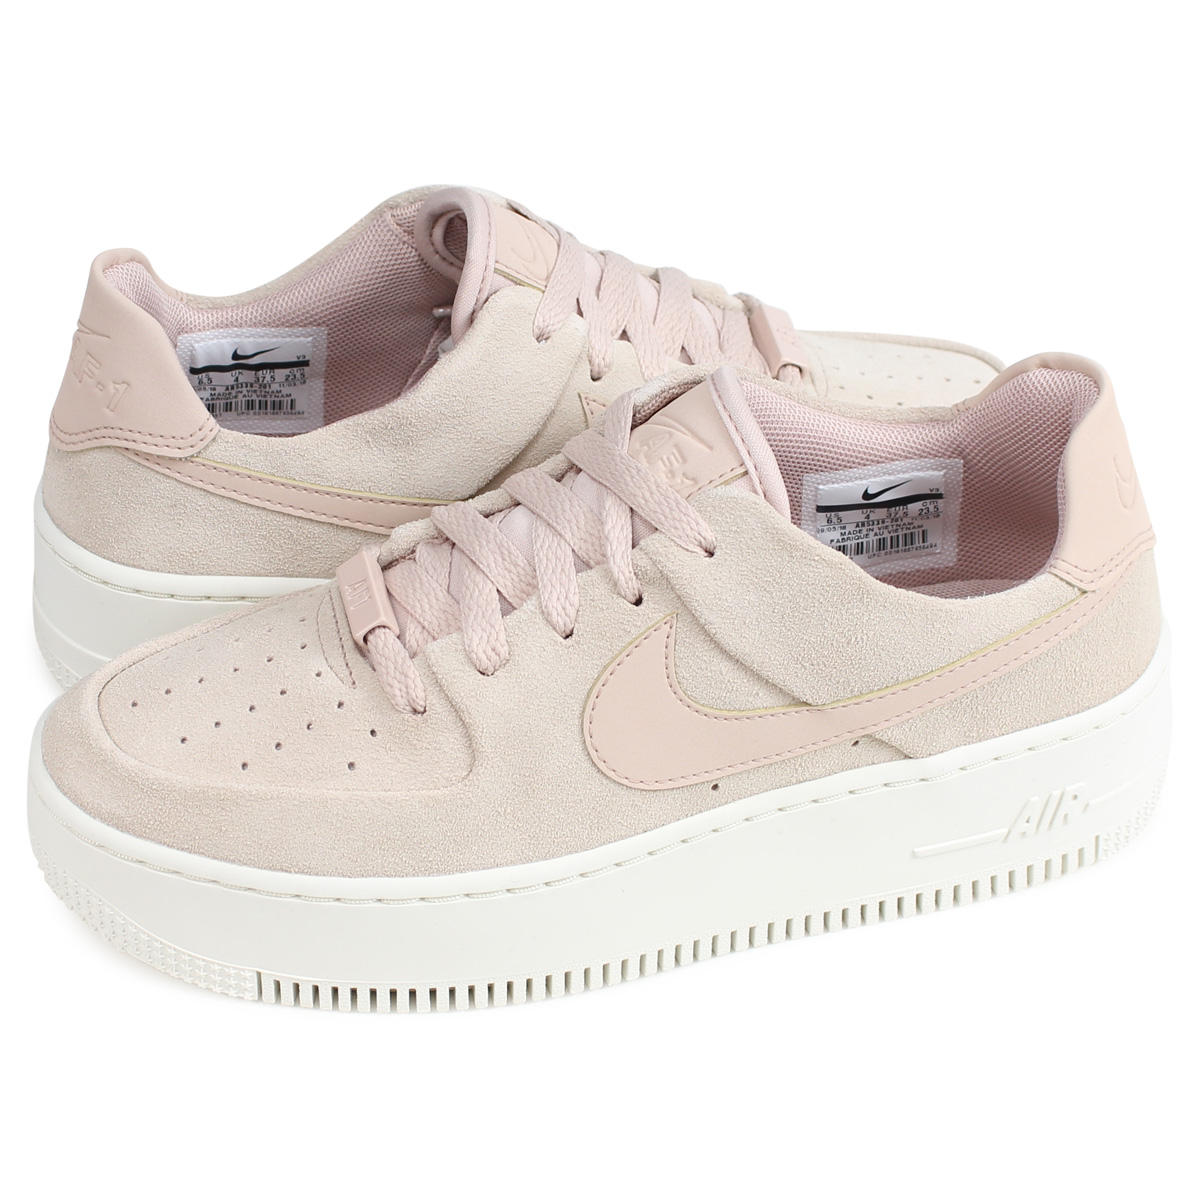 Allsports Nike Nike Air Force 1 Sneakers Lady S Wmns Air Force 1